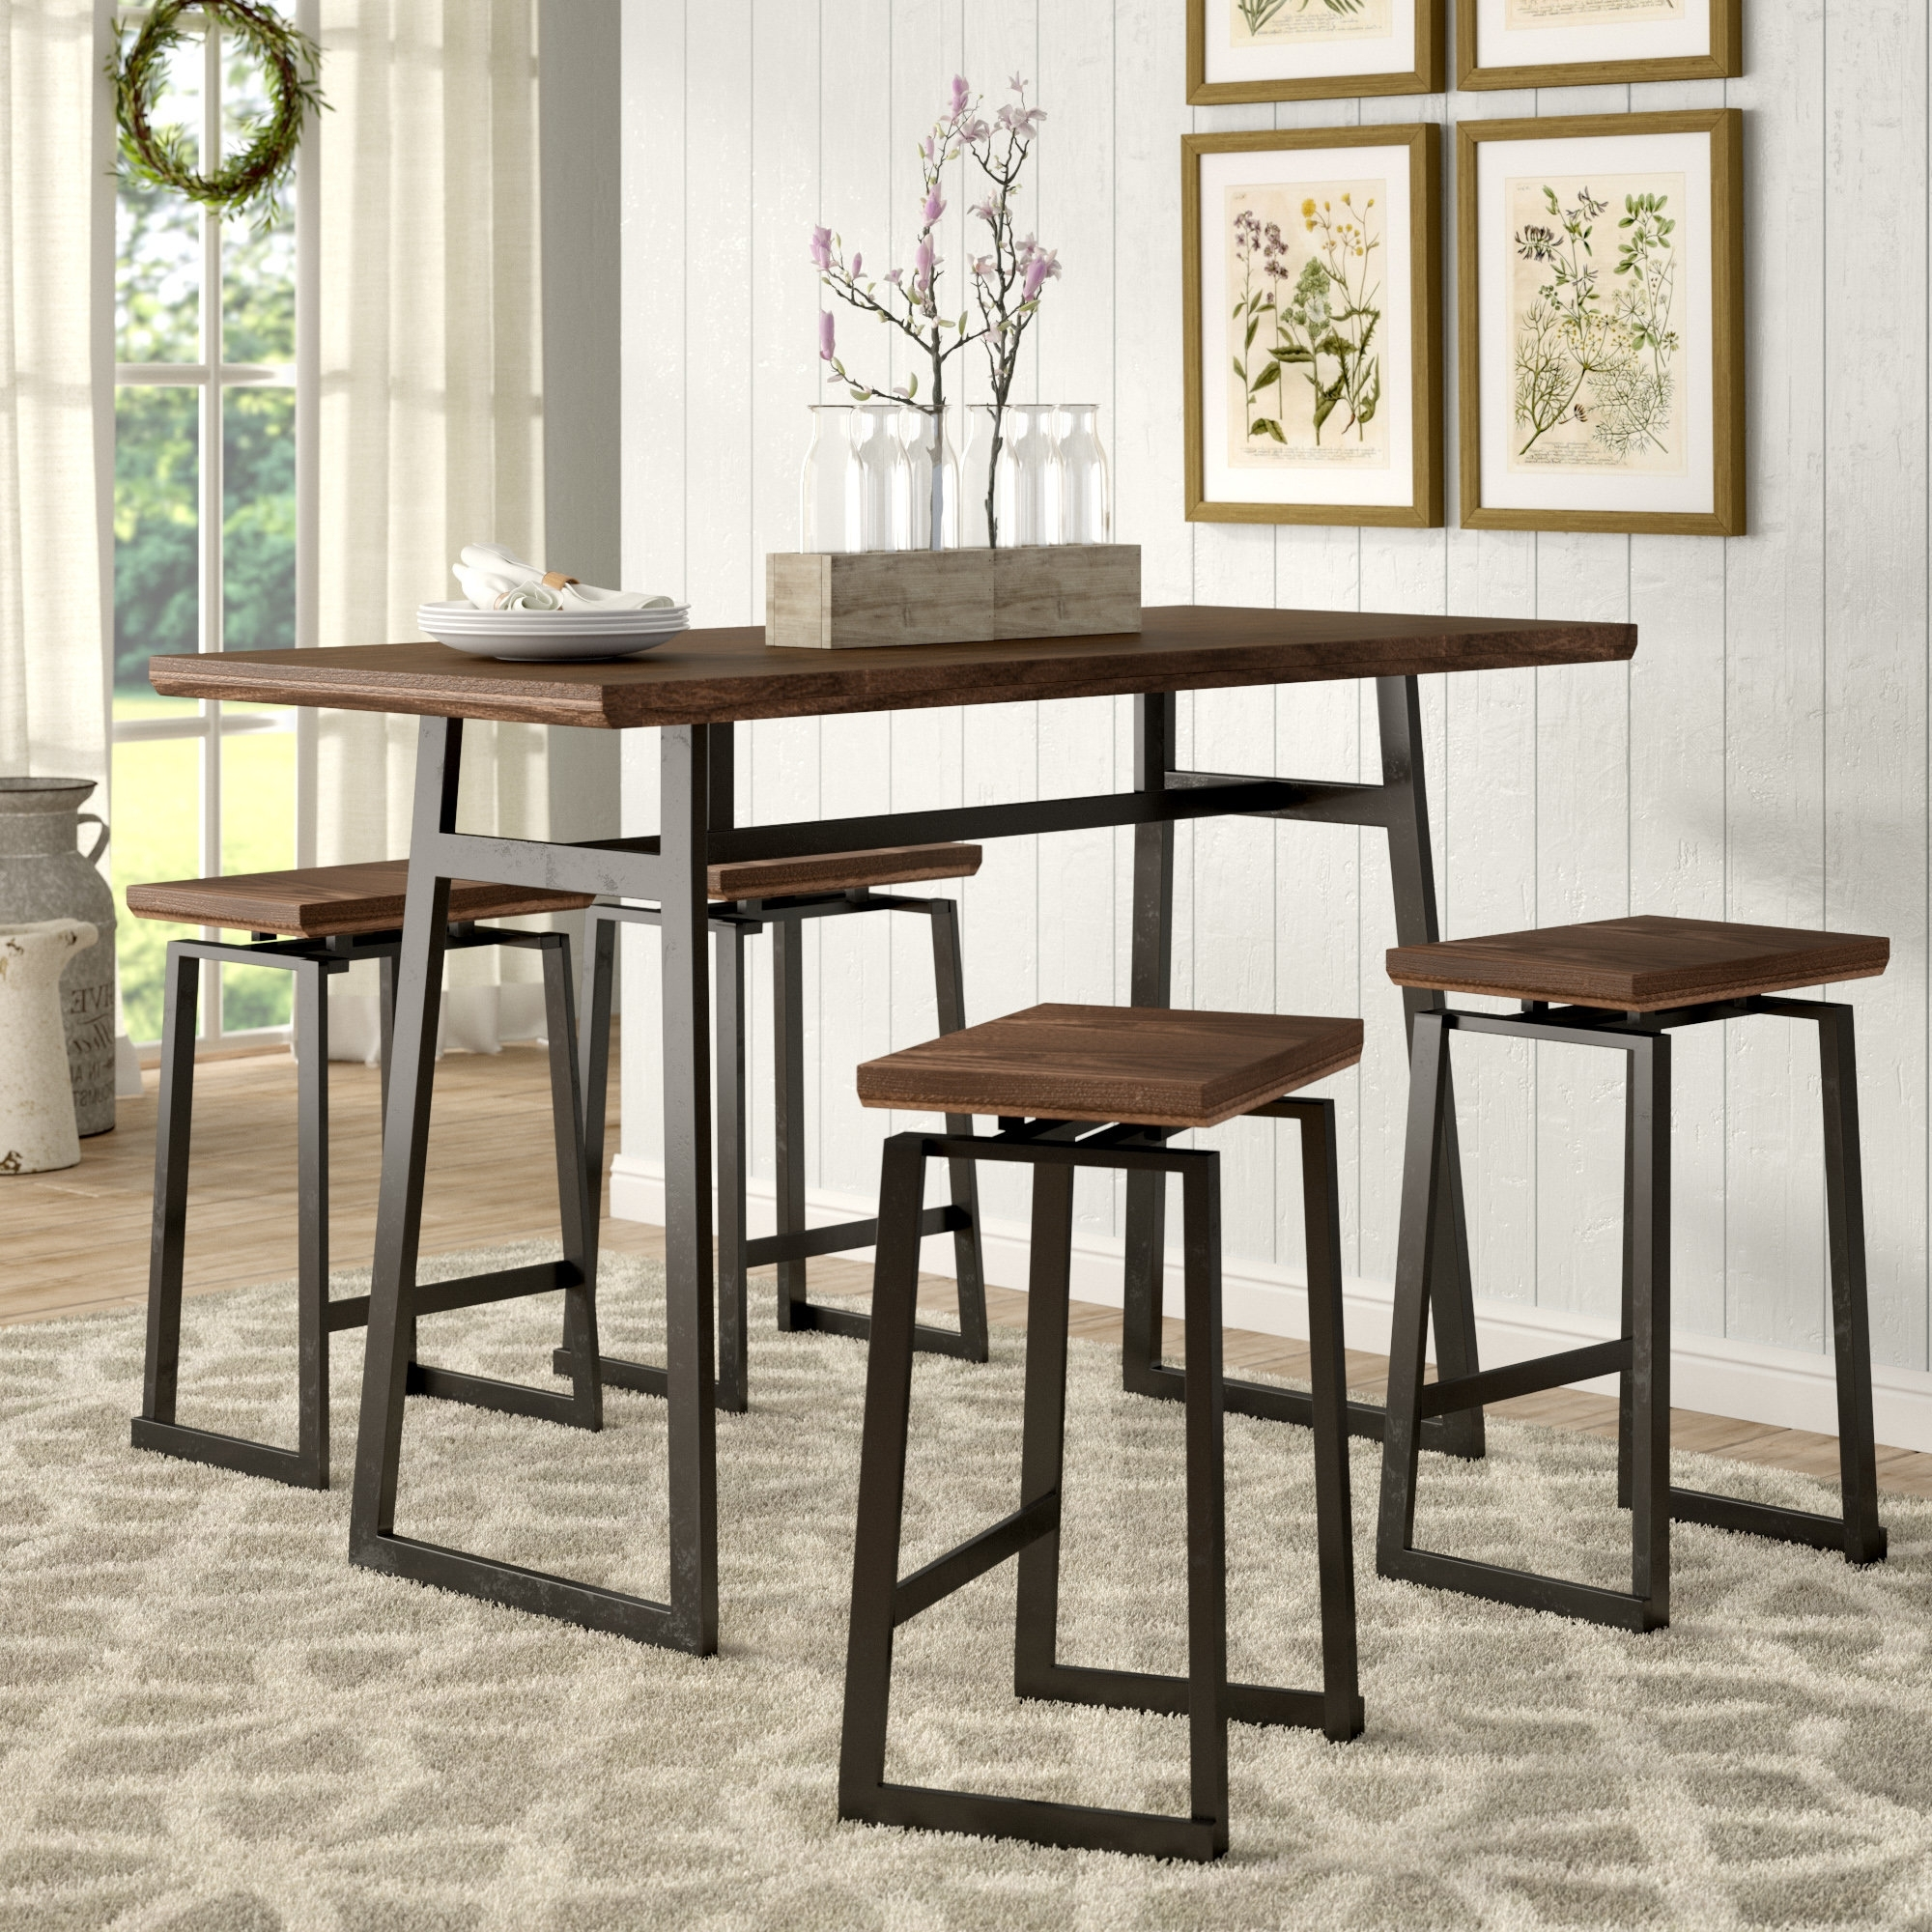 Preferred Gracie Oaks Platane Industrial 5 Piece Counter Height Dining Set In Jaxon 5 Piece Extension Counter Sets With Wood Stools (Gallery 10 of 25)